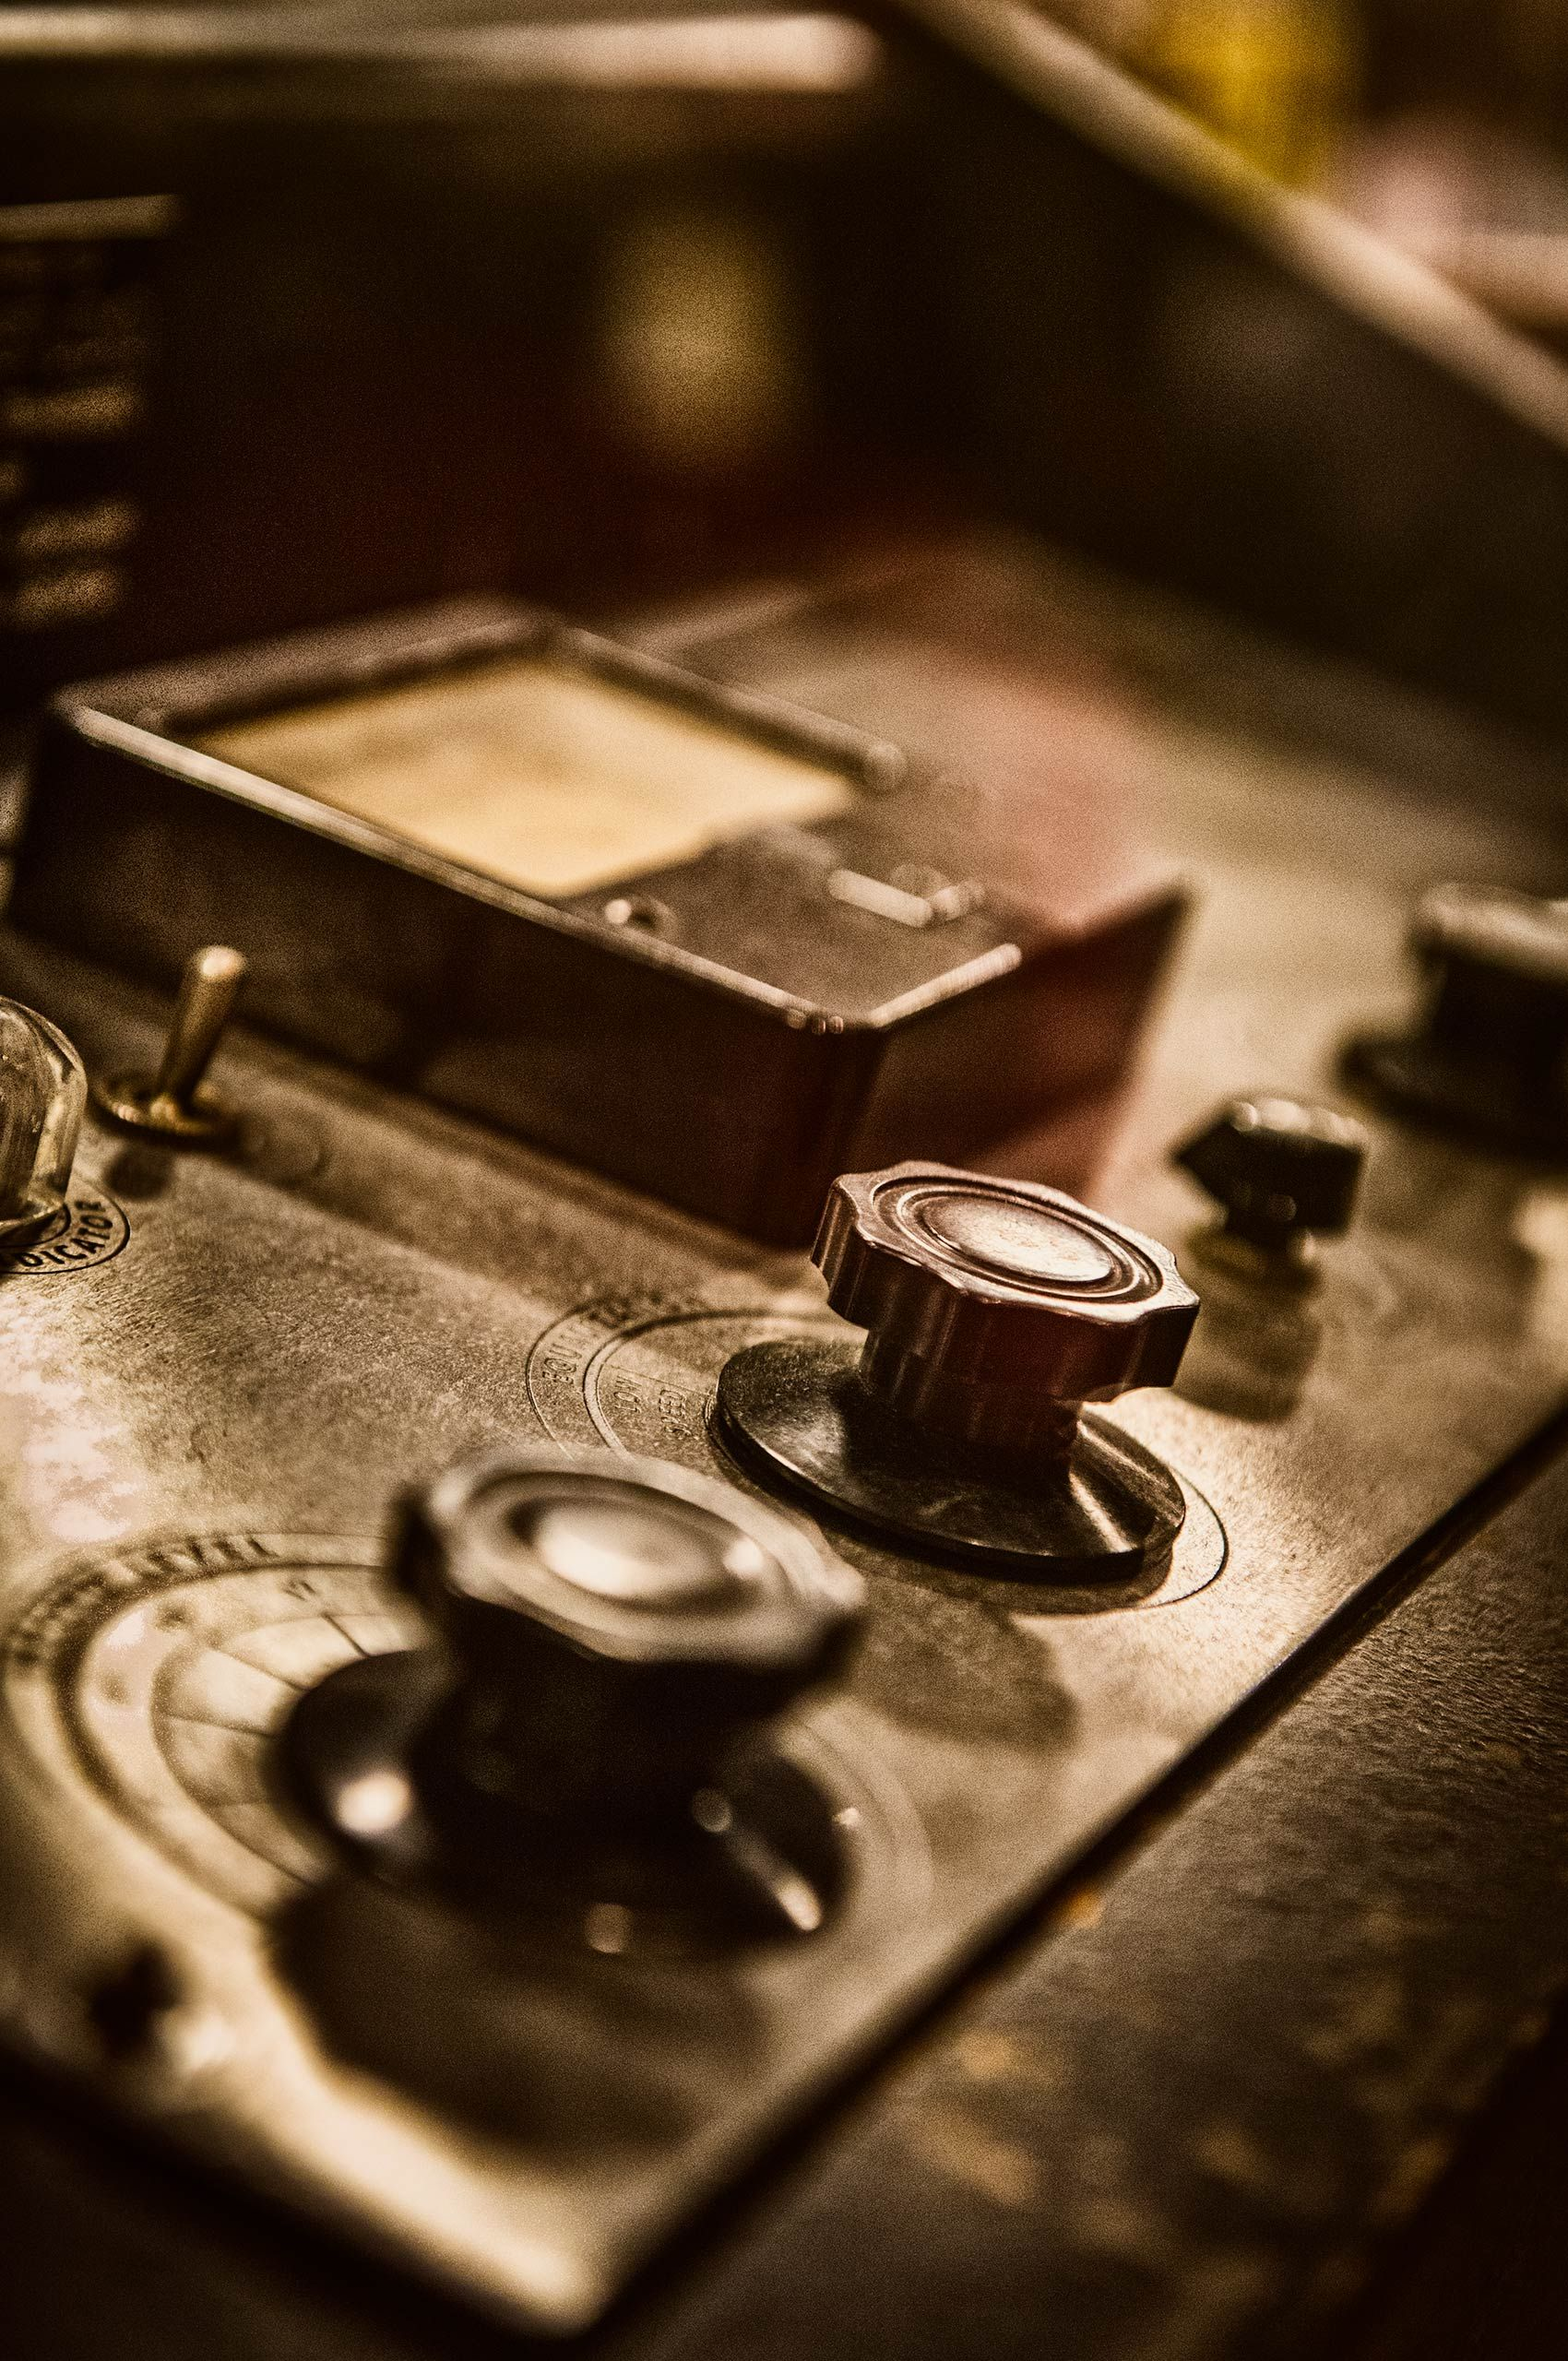 Audioequipment-Recordingdevice-Vintage-HenrikOlundPhotography.jpg